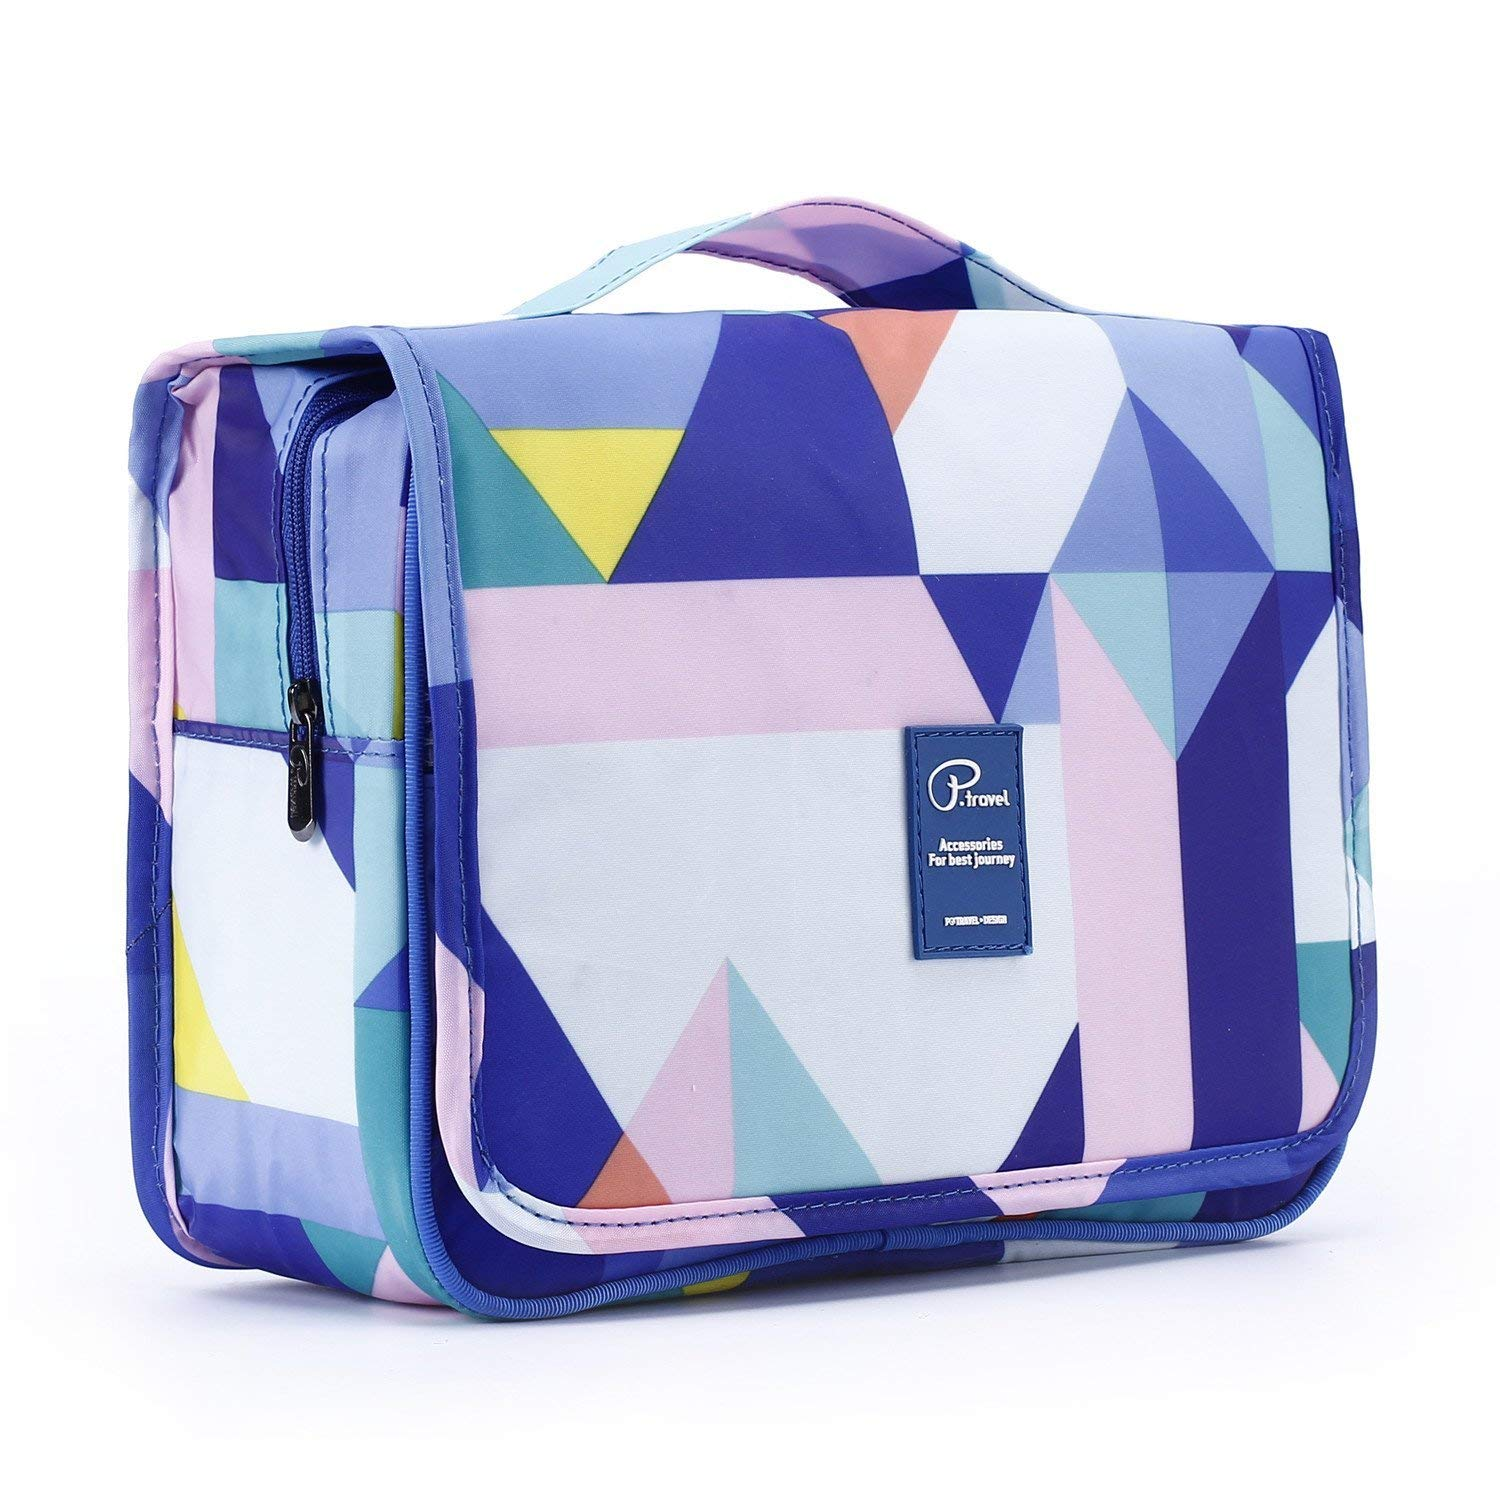 732e670cfff8 2018 New Hanging Toiletry Bag Bathroom Organizer Travel Nylon Portable  Cosmetic Bag for Women and Men